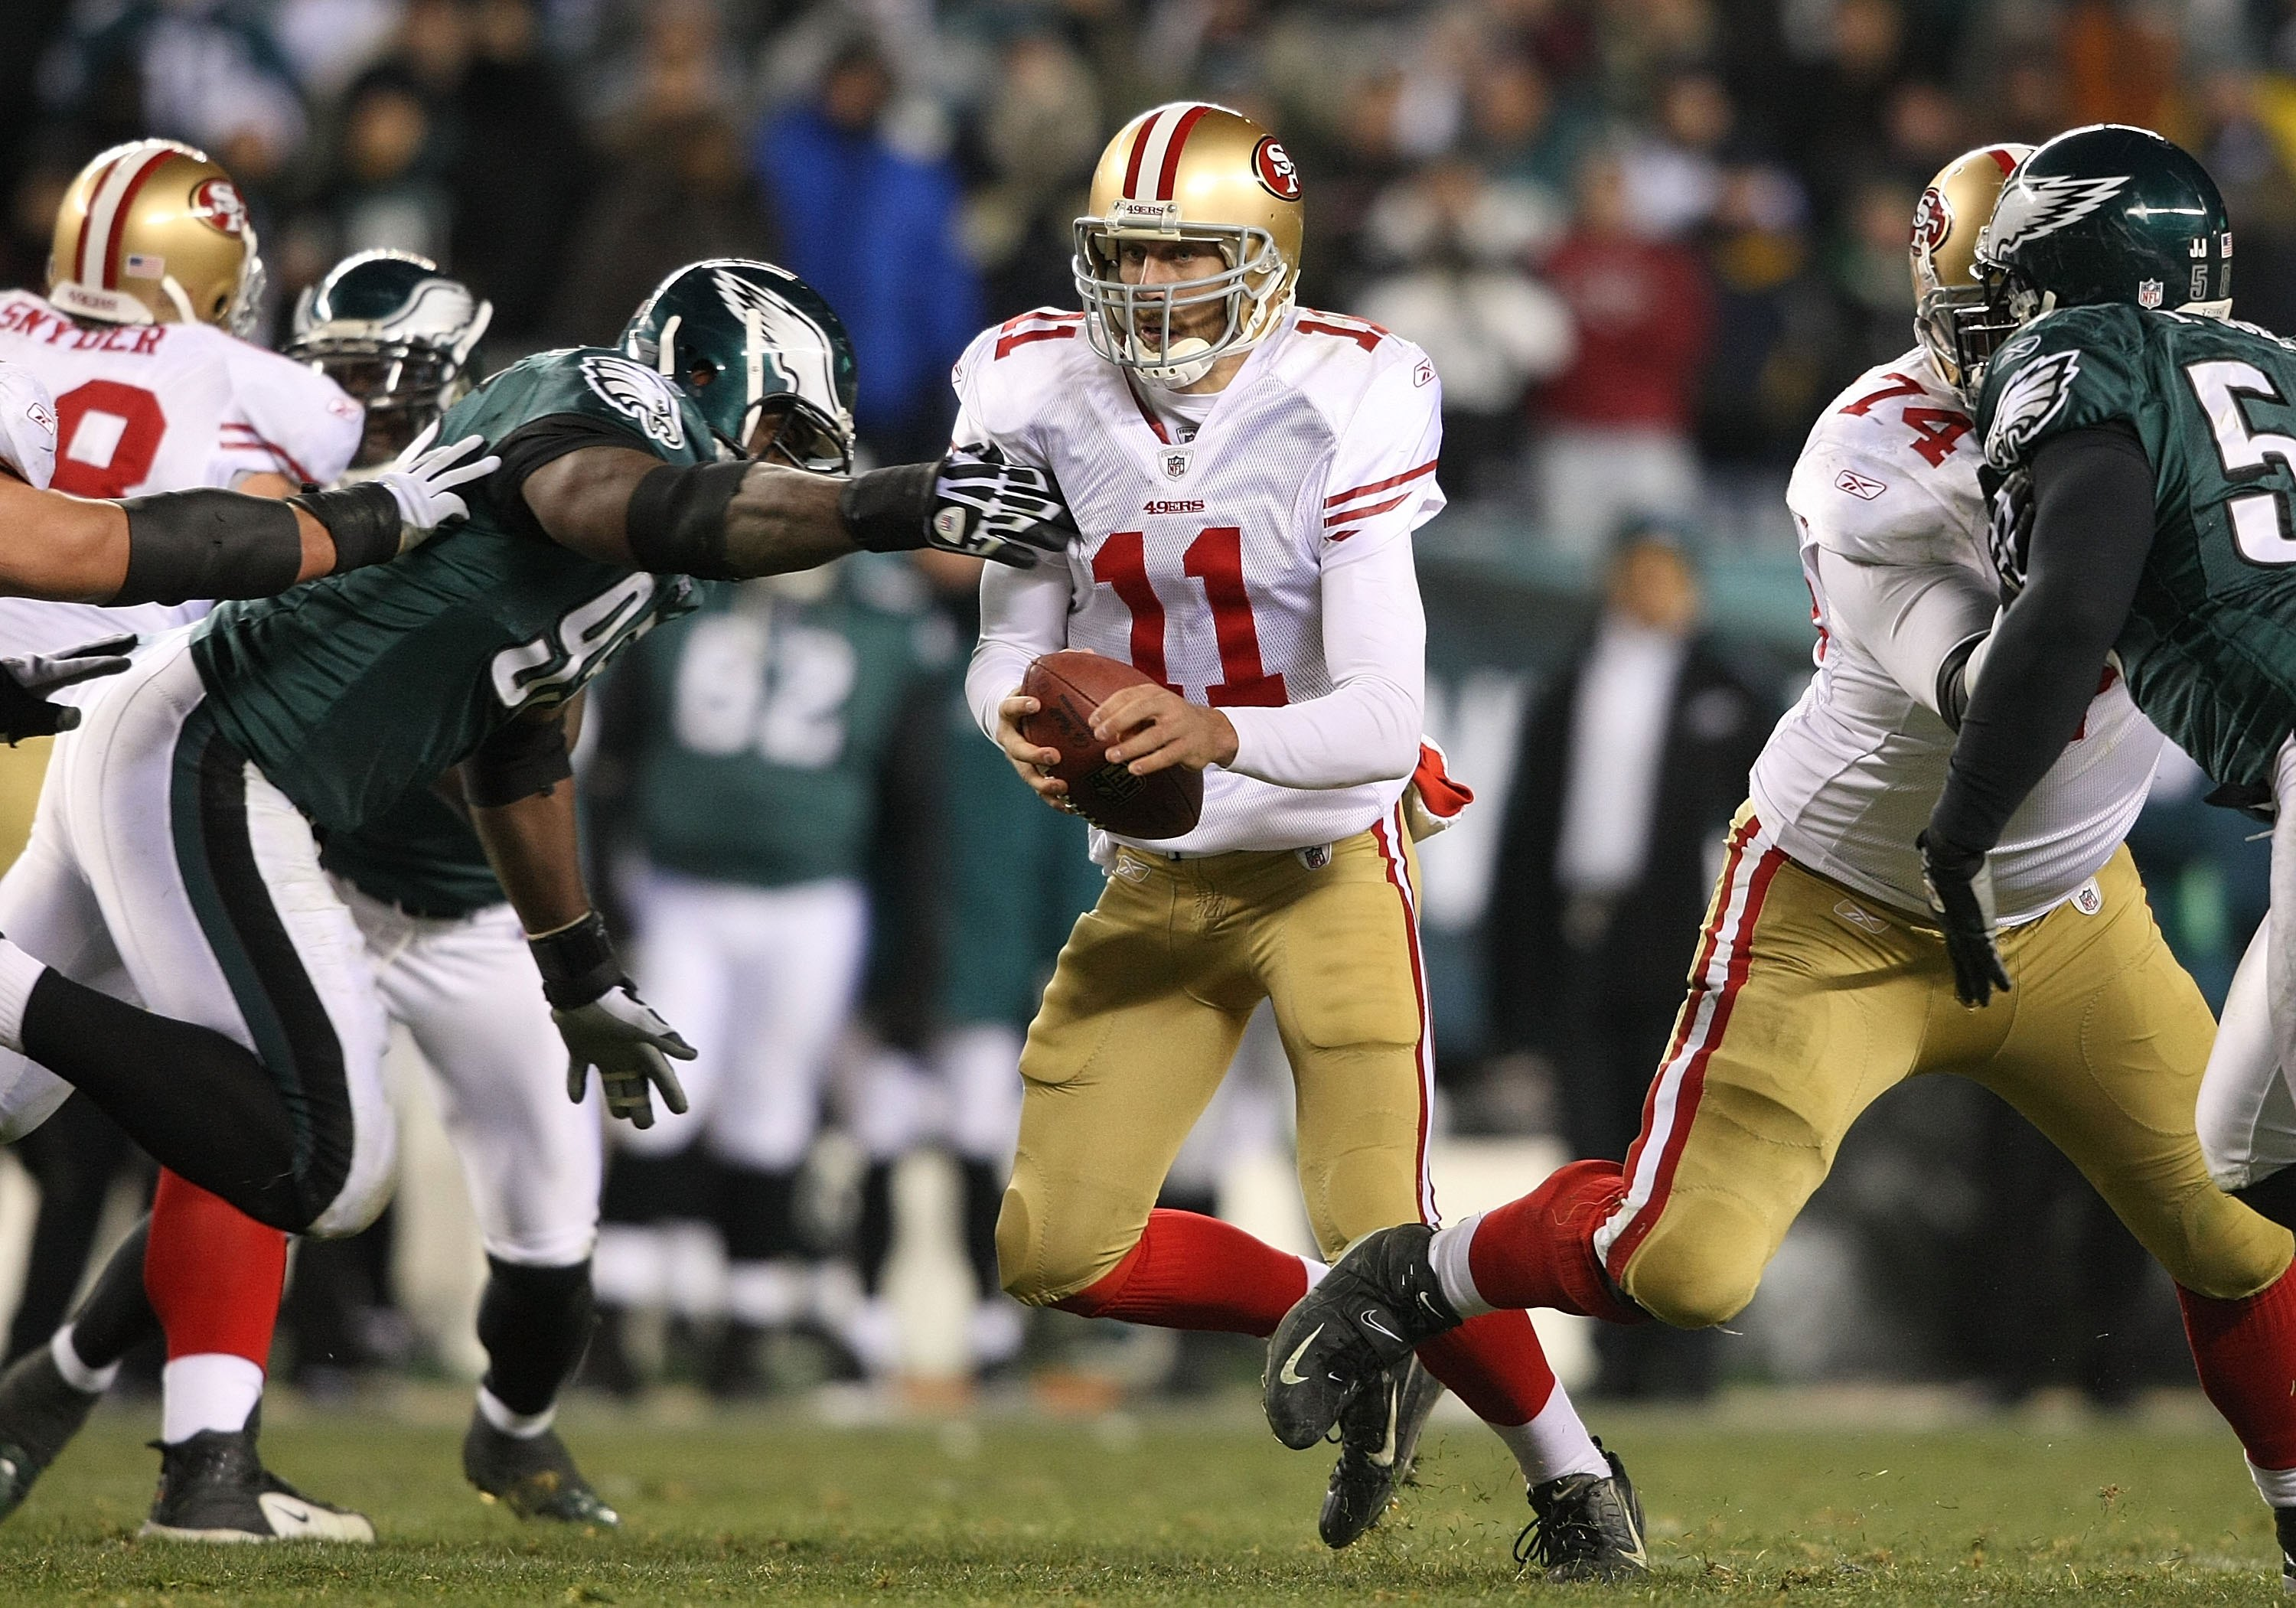 PHILADELPHIA - DECEMBER 20:  Alex Smith #11 of the San Francisco 49ers runs against the Philadelphia Eagles at Lincoln Financial Field on December 20, 2009 in Philadelphia, Pennsylvania.  (Photo by Nick Laham/Getty Images)